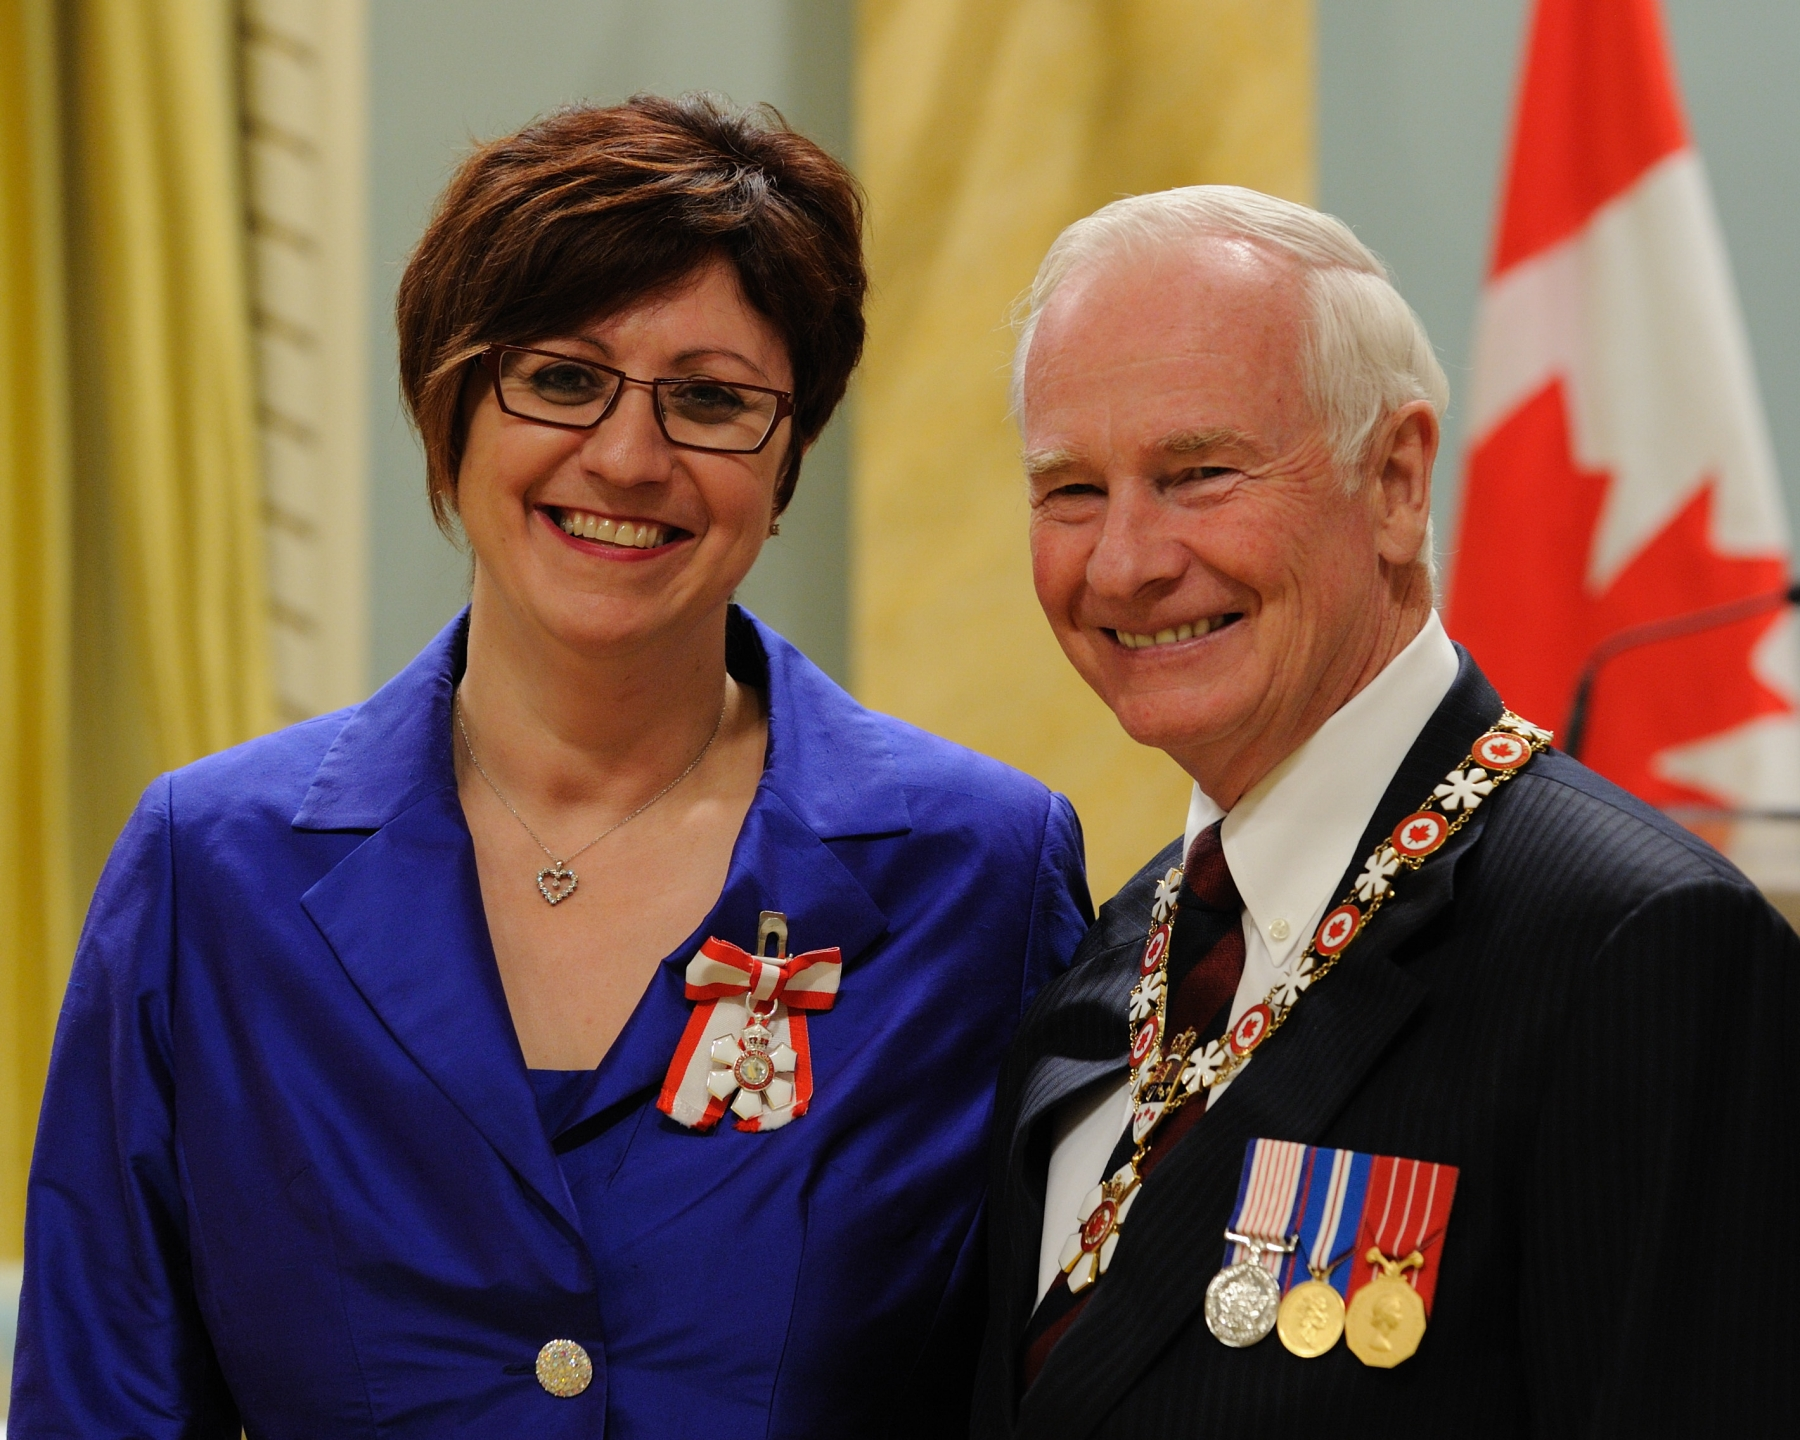 Mary Jo Haddad (Oakvile, Ontario) is a passionate advocate for children's health care. Formerly a neonatal nurse and now president and chief executive officer of Toronto's Hospital for Sick Children (SickKids), she has played a leadership role in building a system of pediatric health care in Ontario through collaboration and innovation. Her focus on family-centered care has empowered children and their families to be important partners in health care delivery. She has also played a pivotal role in enhancing pediatric health care by sharing SickKids' expertise and best practices with hospitals around the world. In addition, her leadership has benefited such organizations as the Provincial Council for Maternal and Child Health, and the Canadian Association of Pediatric Health Centres.